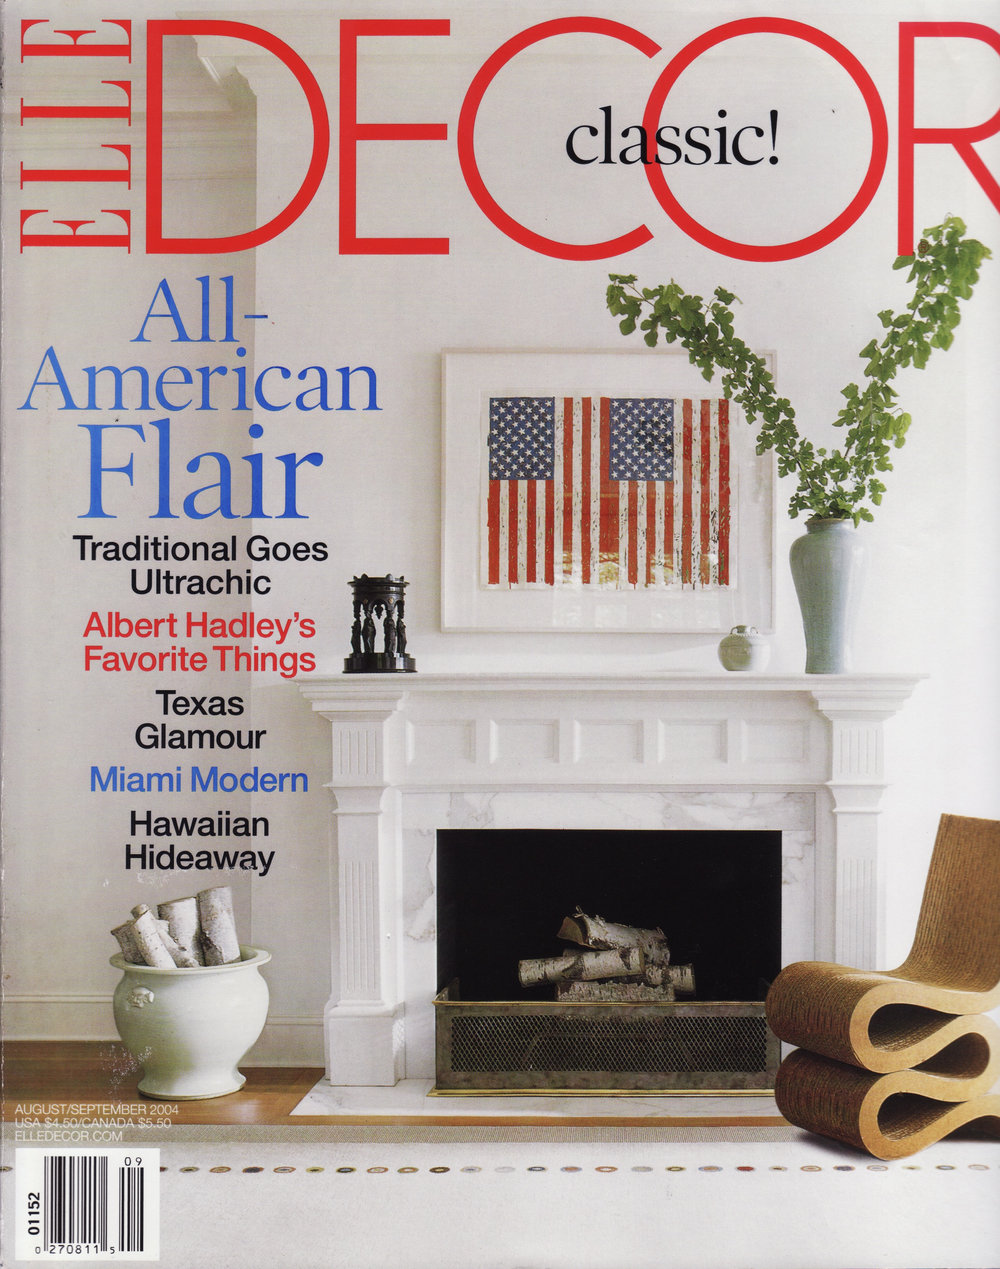 elle decor aug 2004-2.jpg